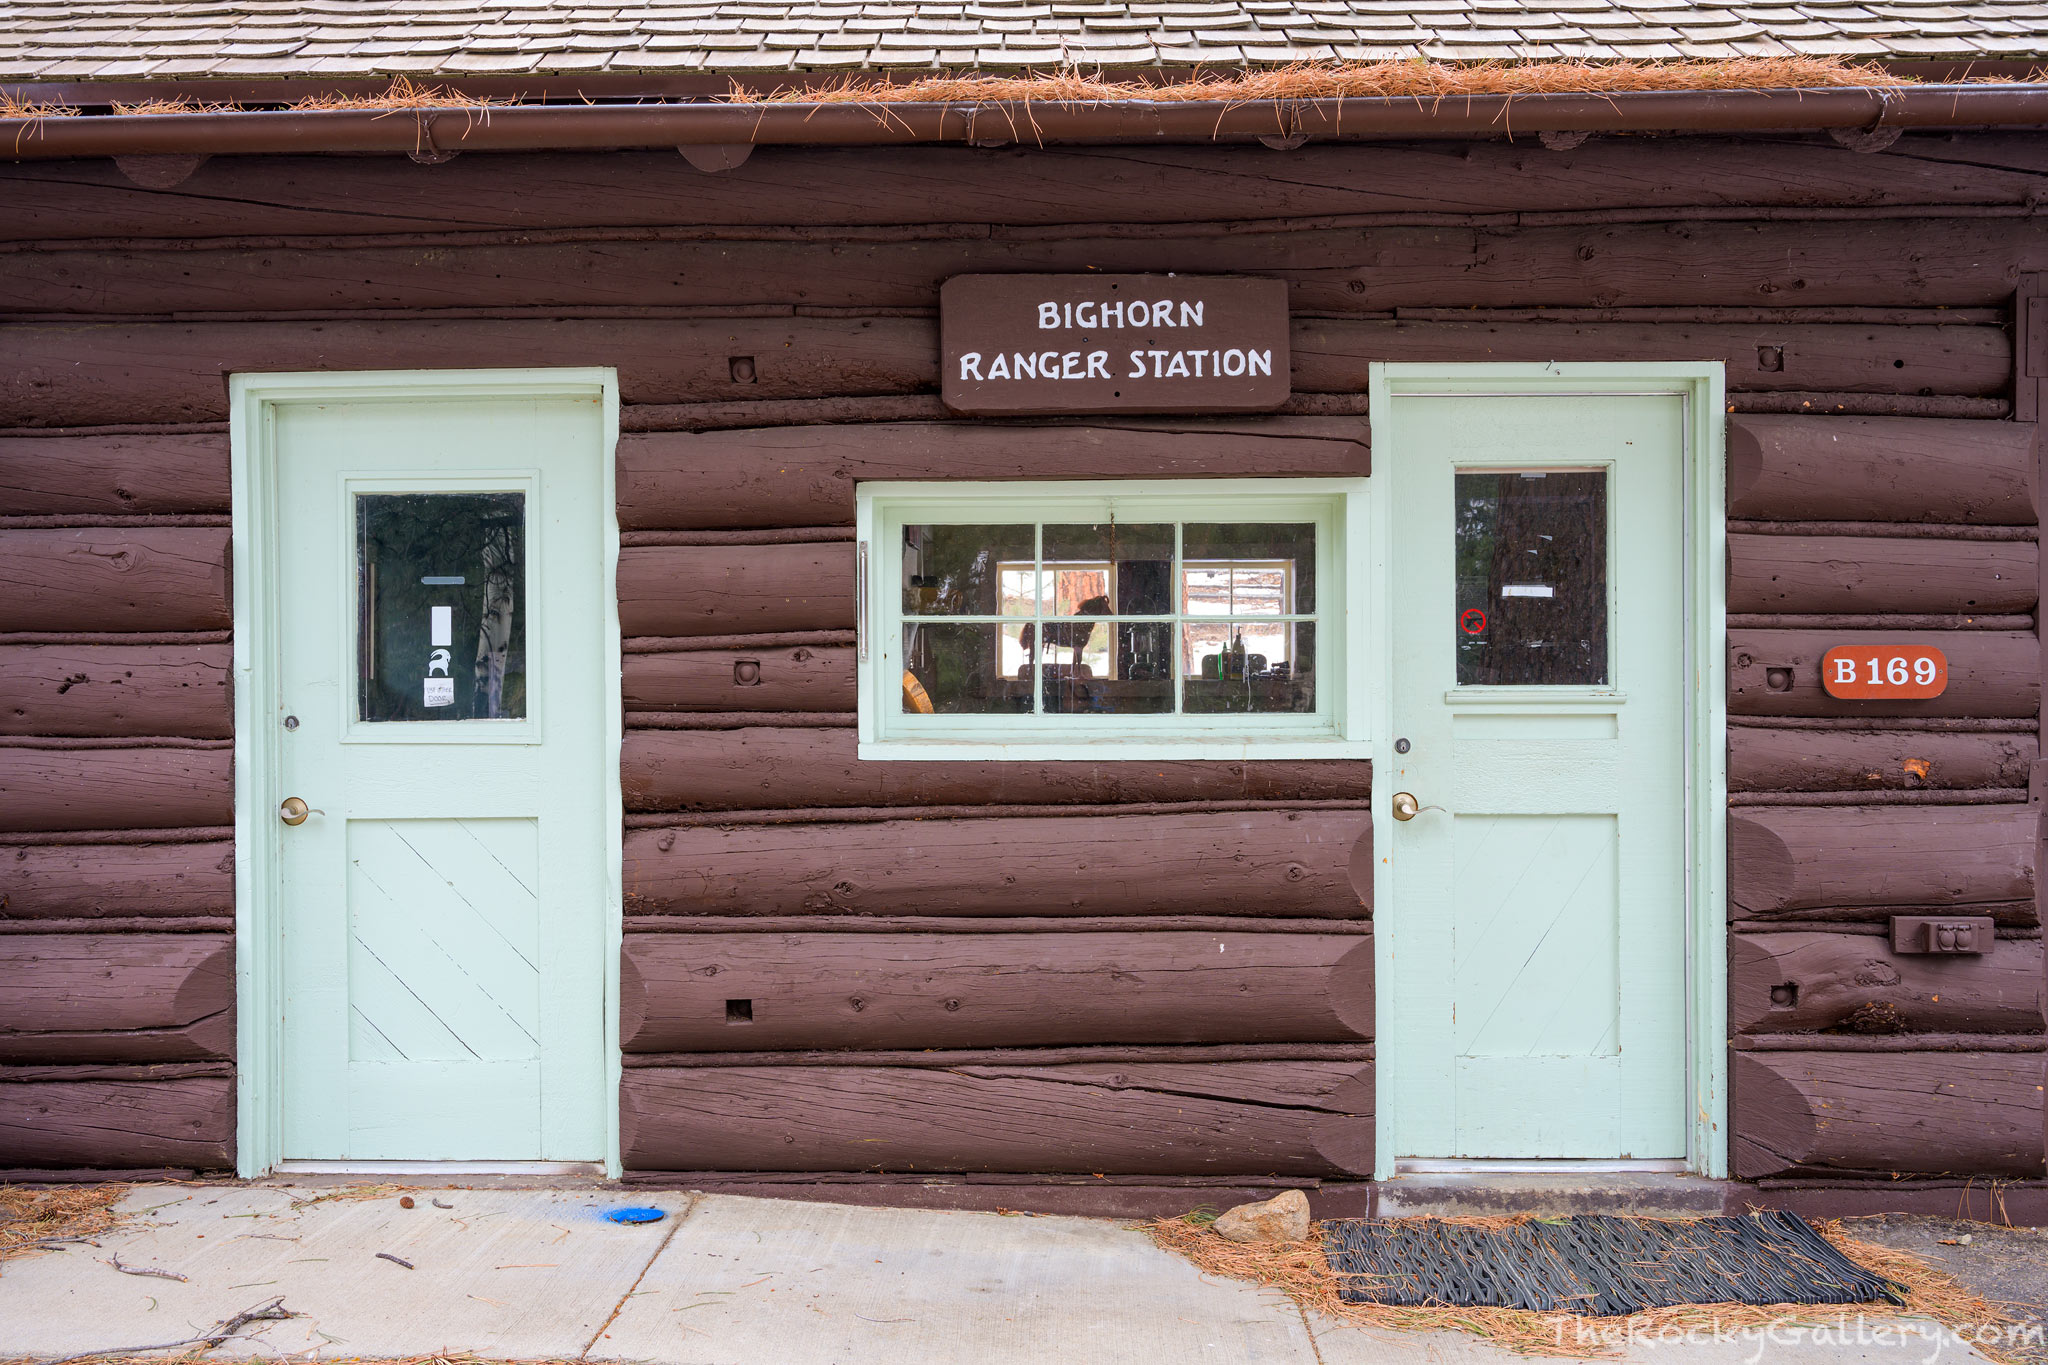 Bighorn Ranger Station,Fall River Entrance Historic District,Fall River,Fall River Road,Rustic,Estes Park,Colorado,RMNP,Rocky Mountain National Park,Landscape,Photography,January,Doors,National Park S, photo